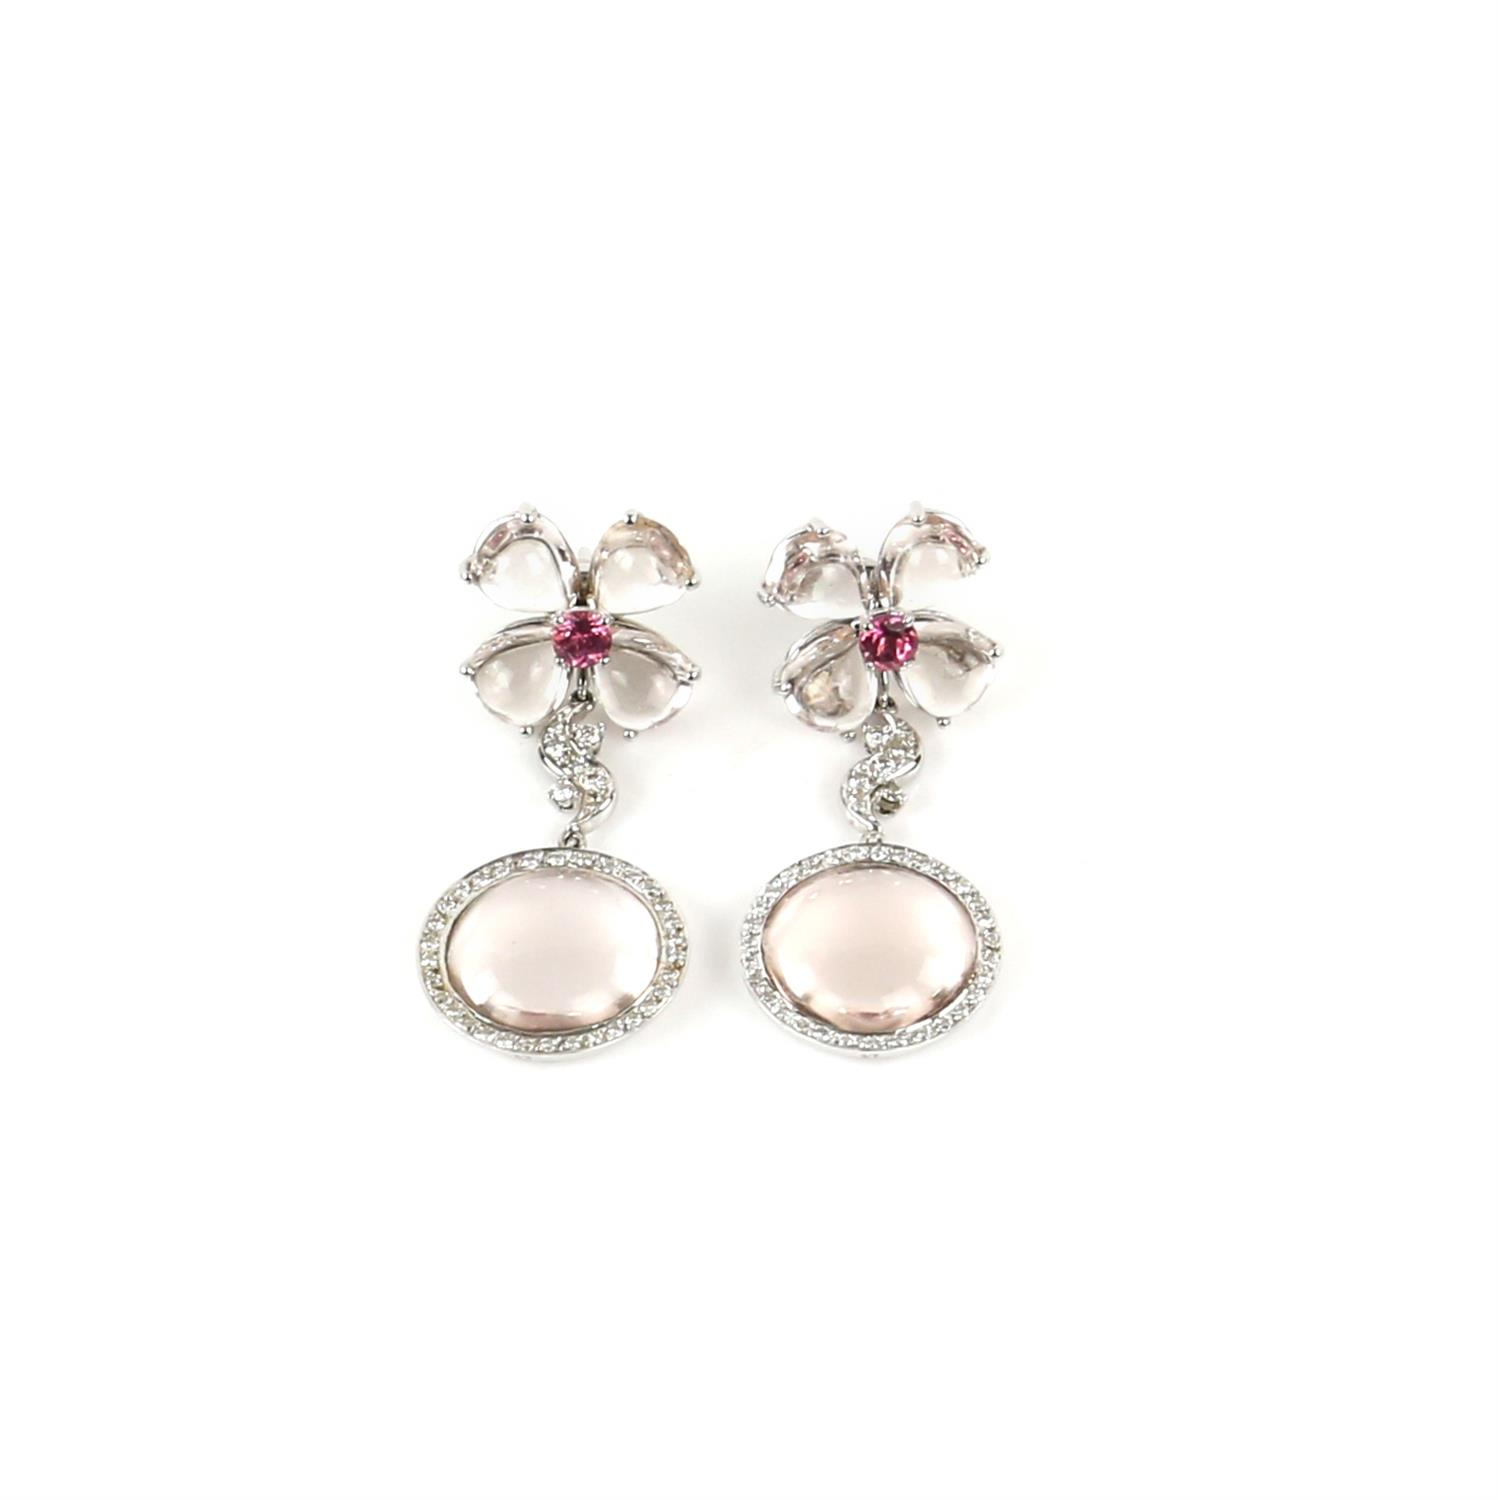 Pair of Gilan drop earrings, designed as a floral motif with a central synthetic pink spinel, - Image 2 of 5